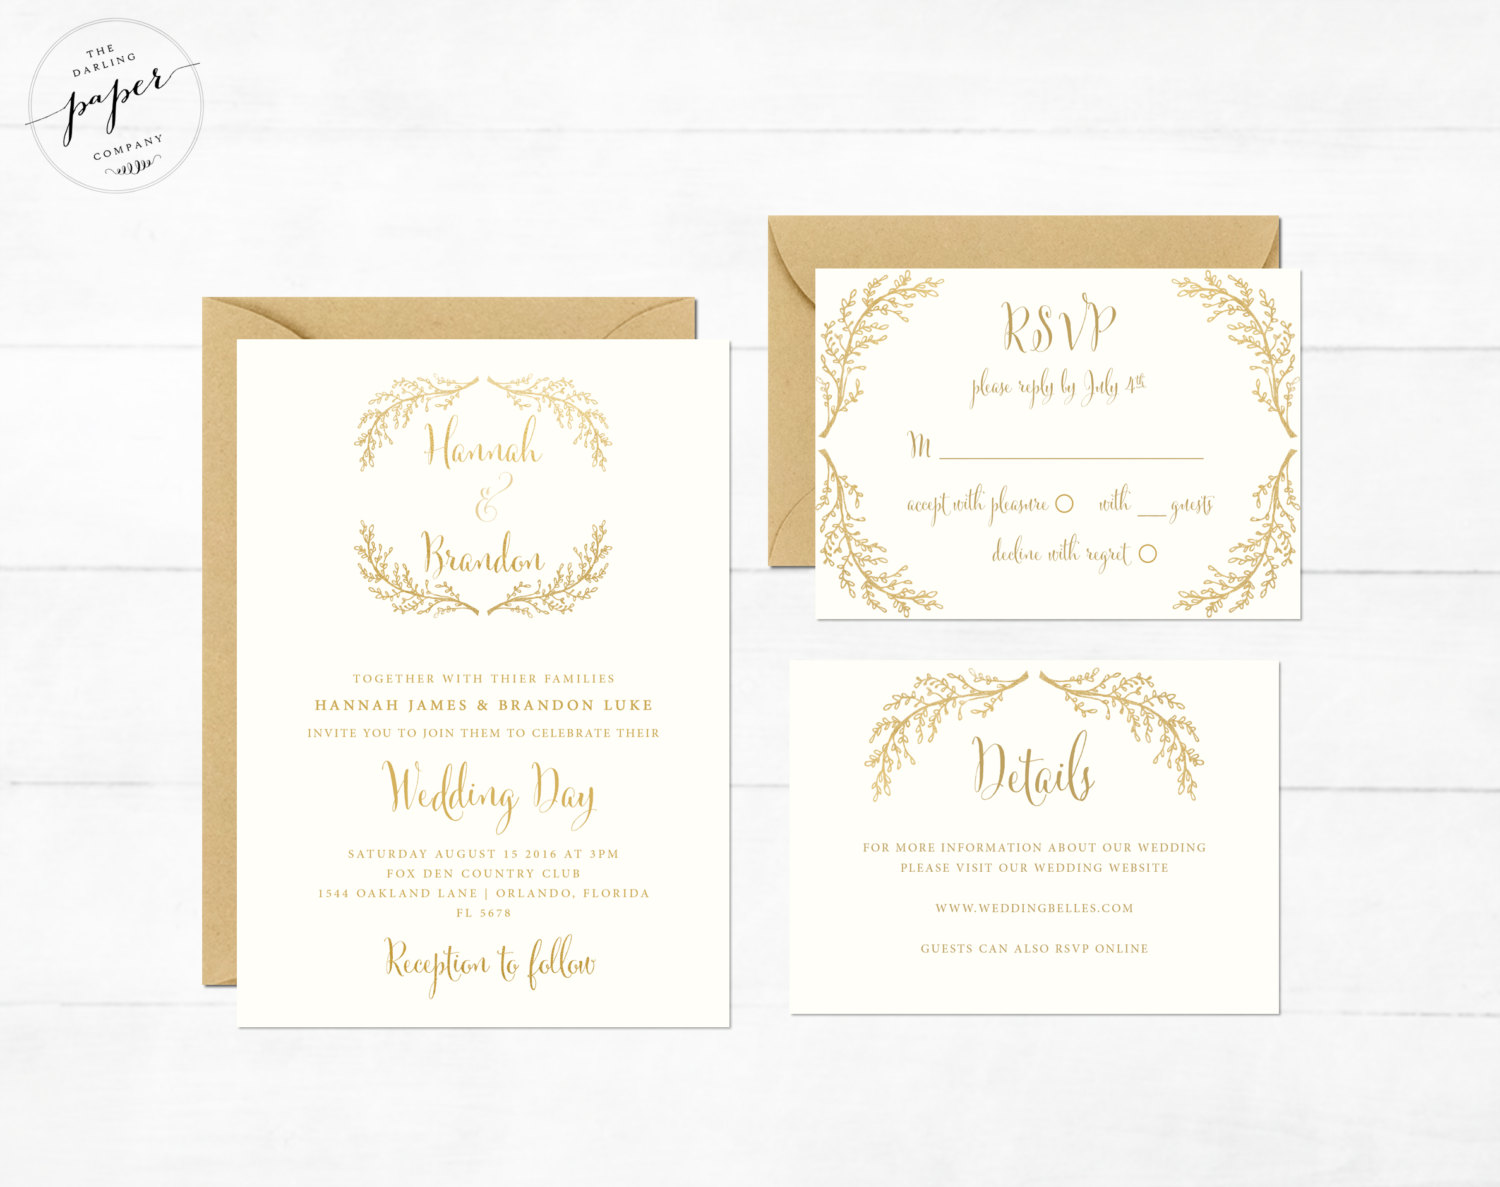 Gold Foil Wedding Invitations / from 14 Ways Real Brides Plan to Sparkle on their Wedding Day